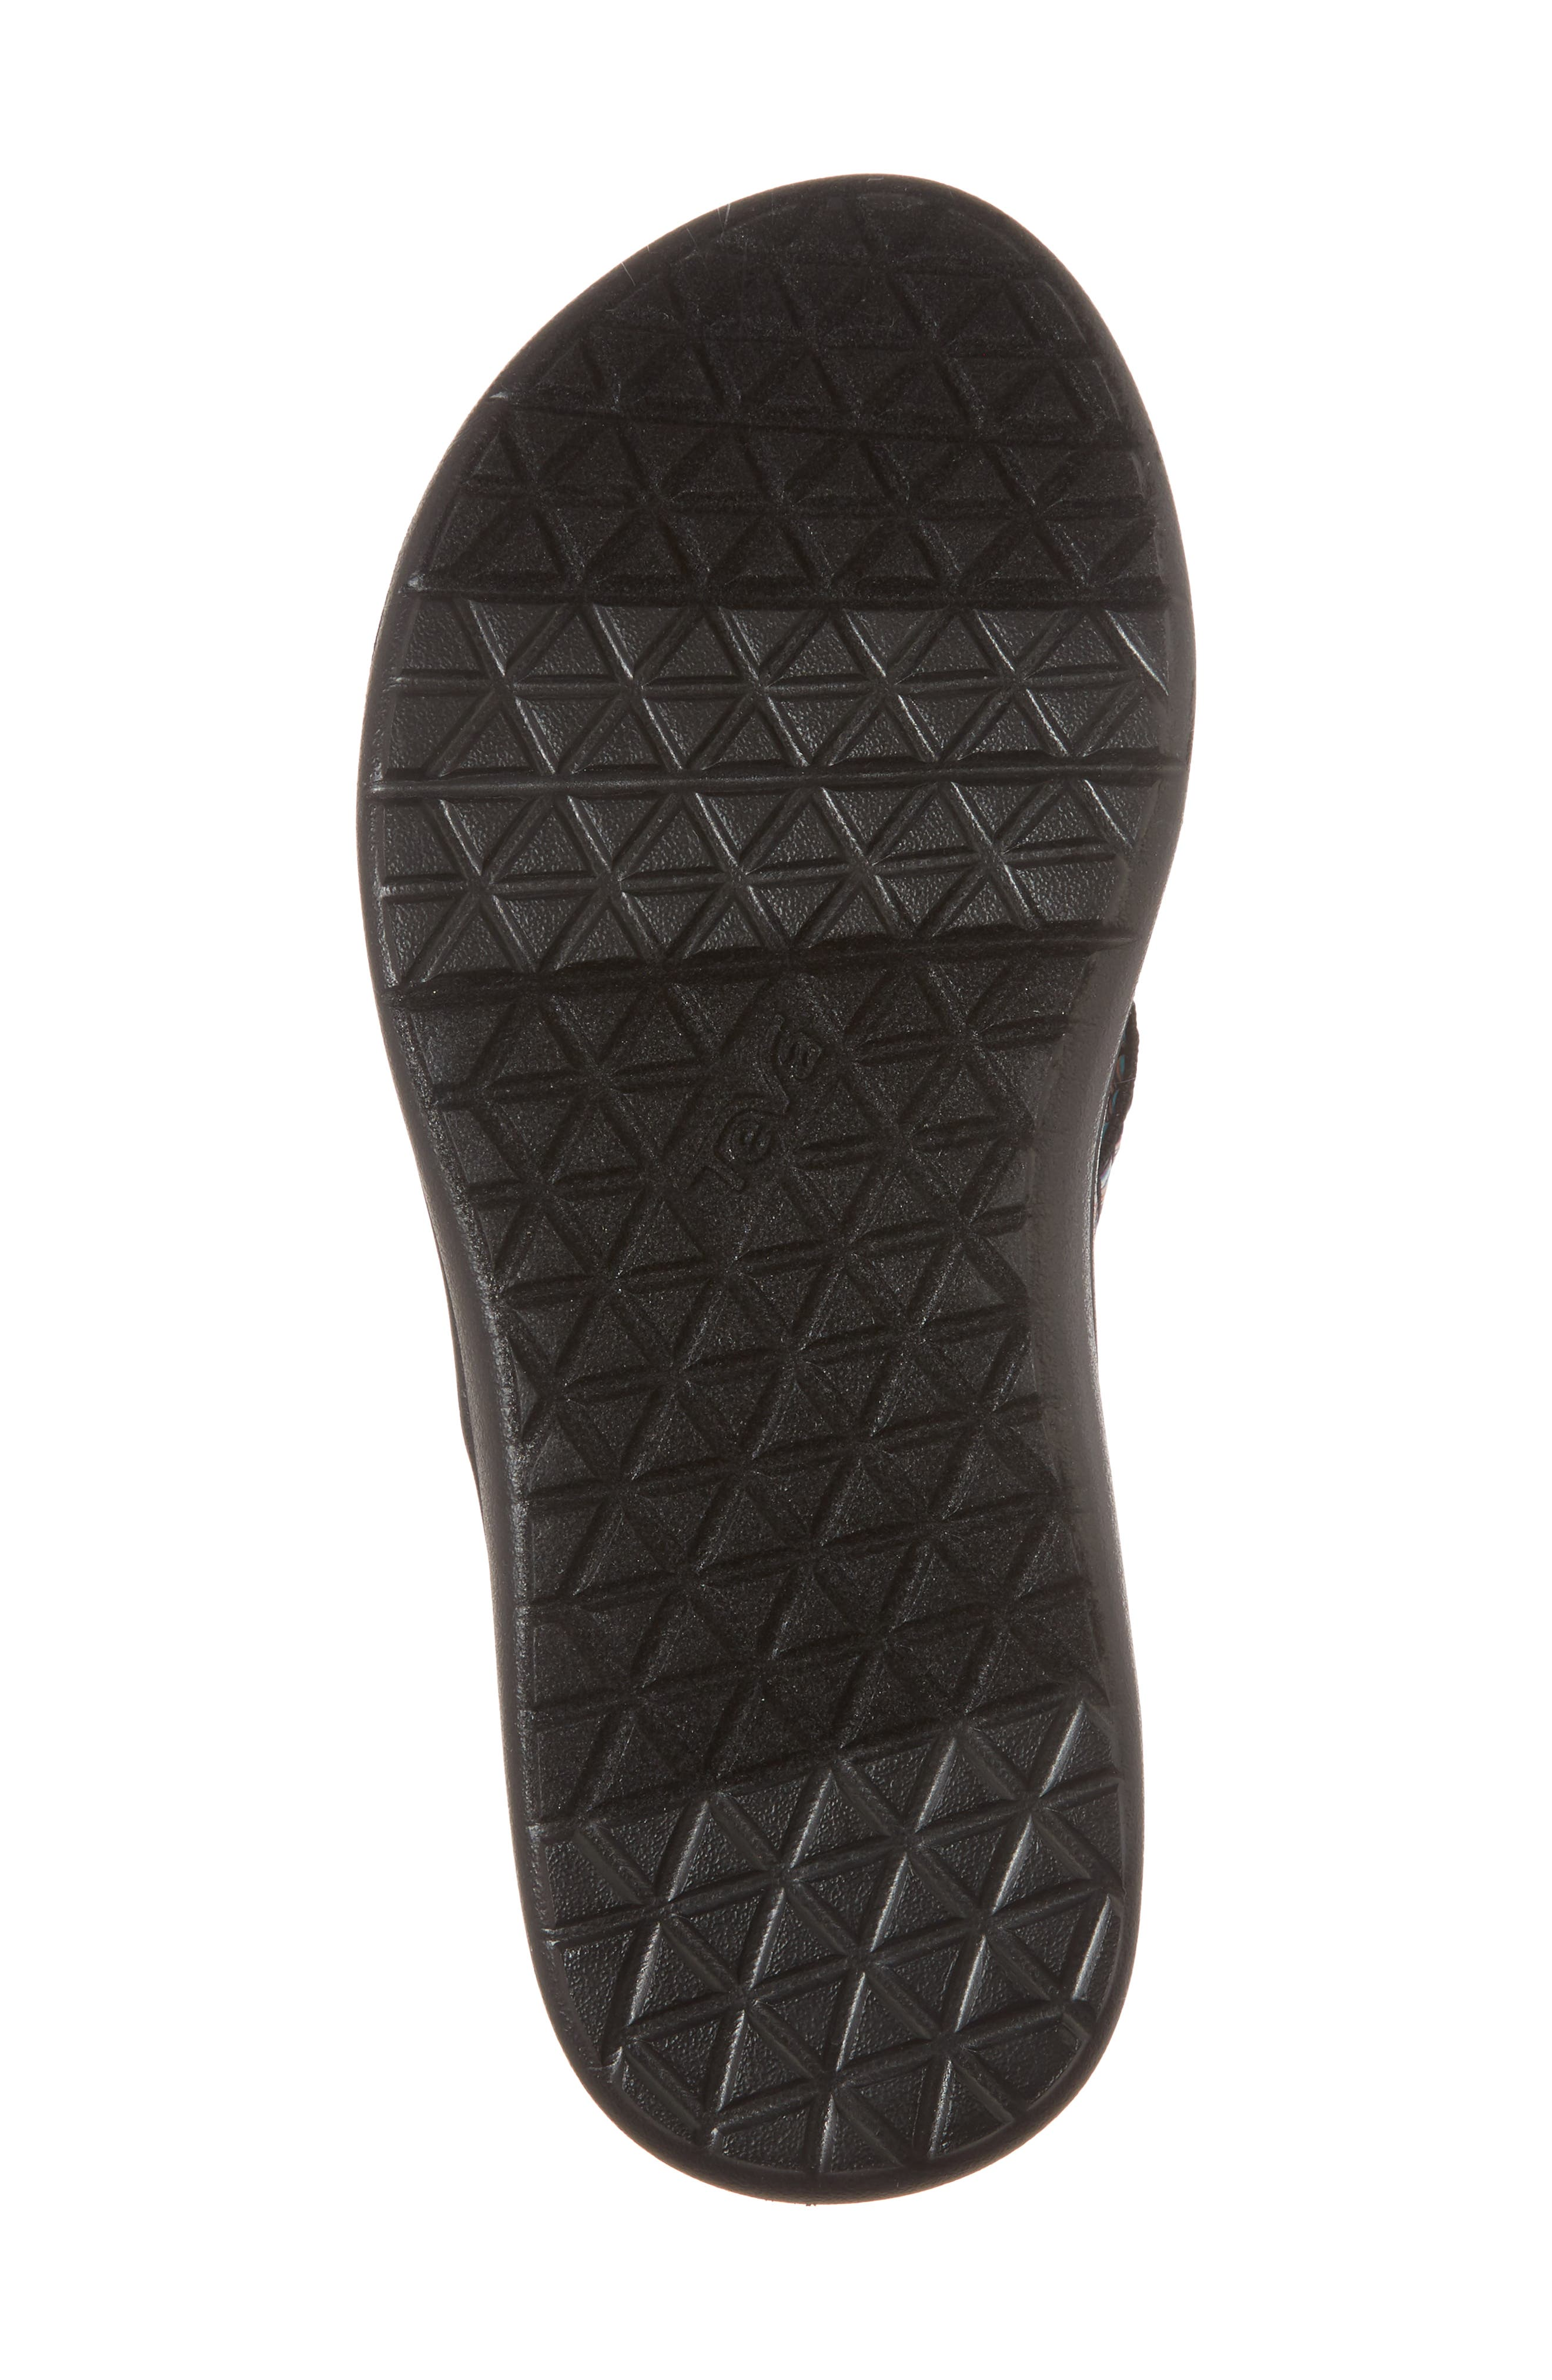 TEVA, Voya Flip Flop, Alternate thumbnail 6, color, 001